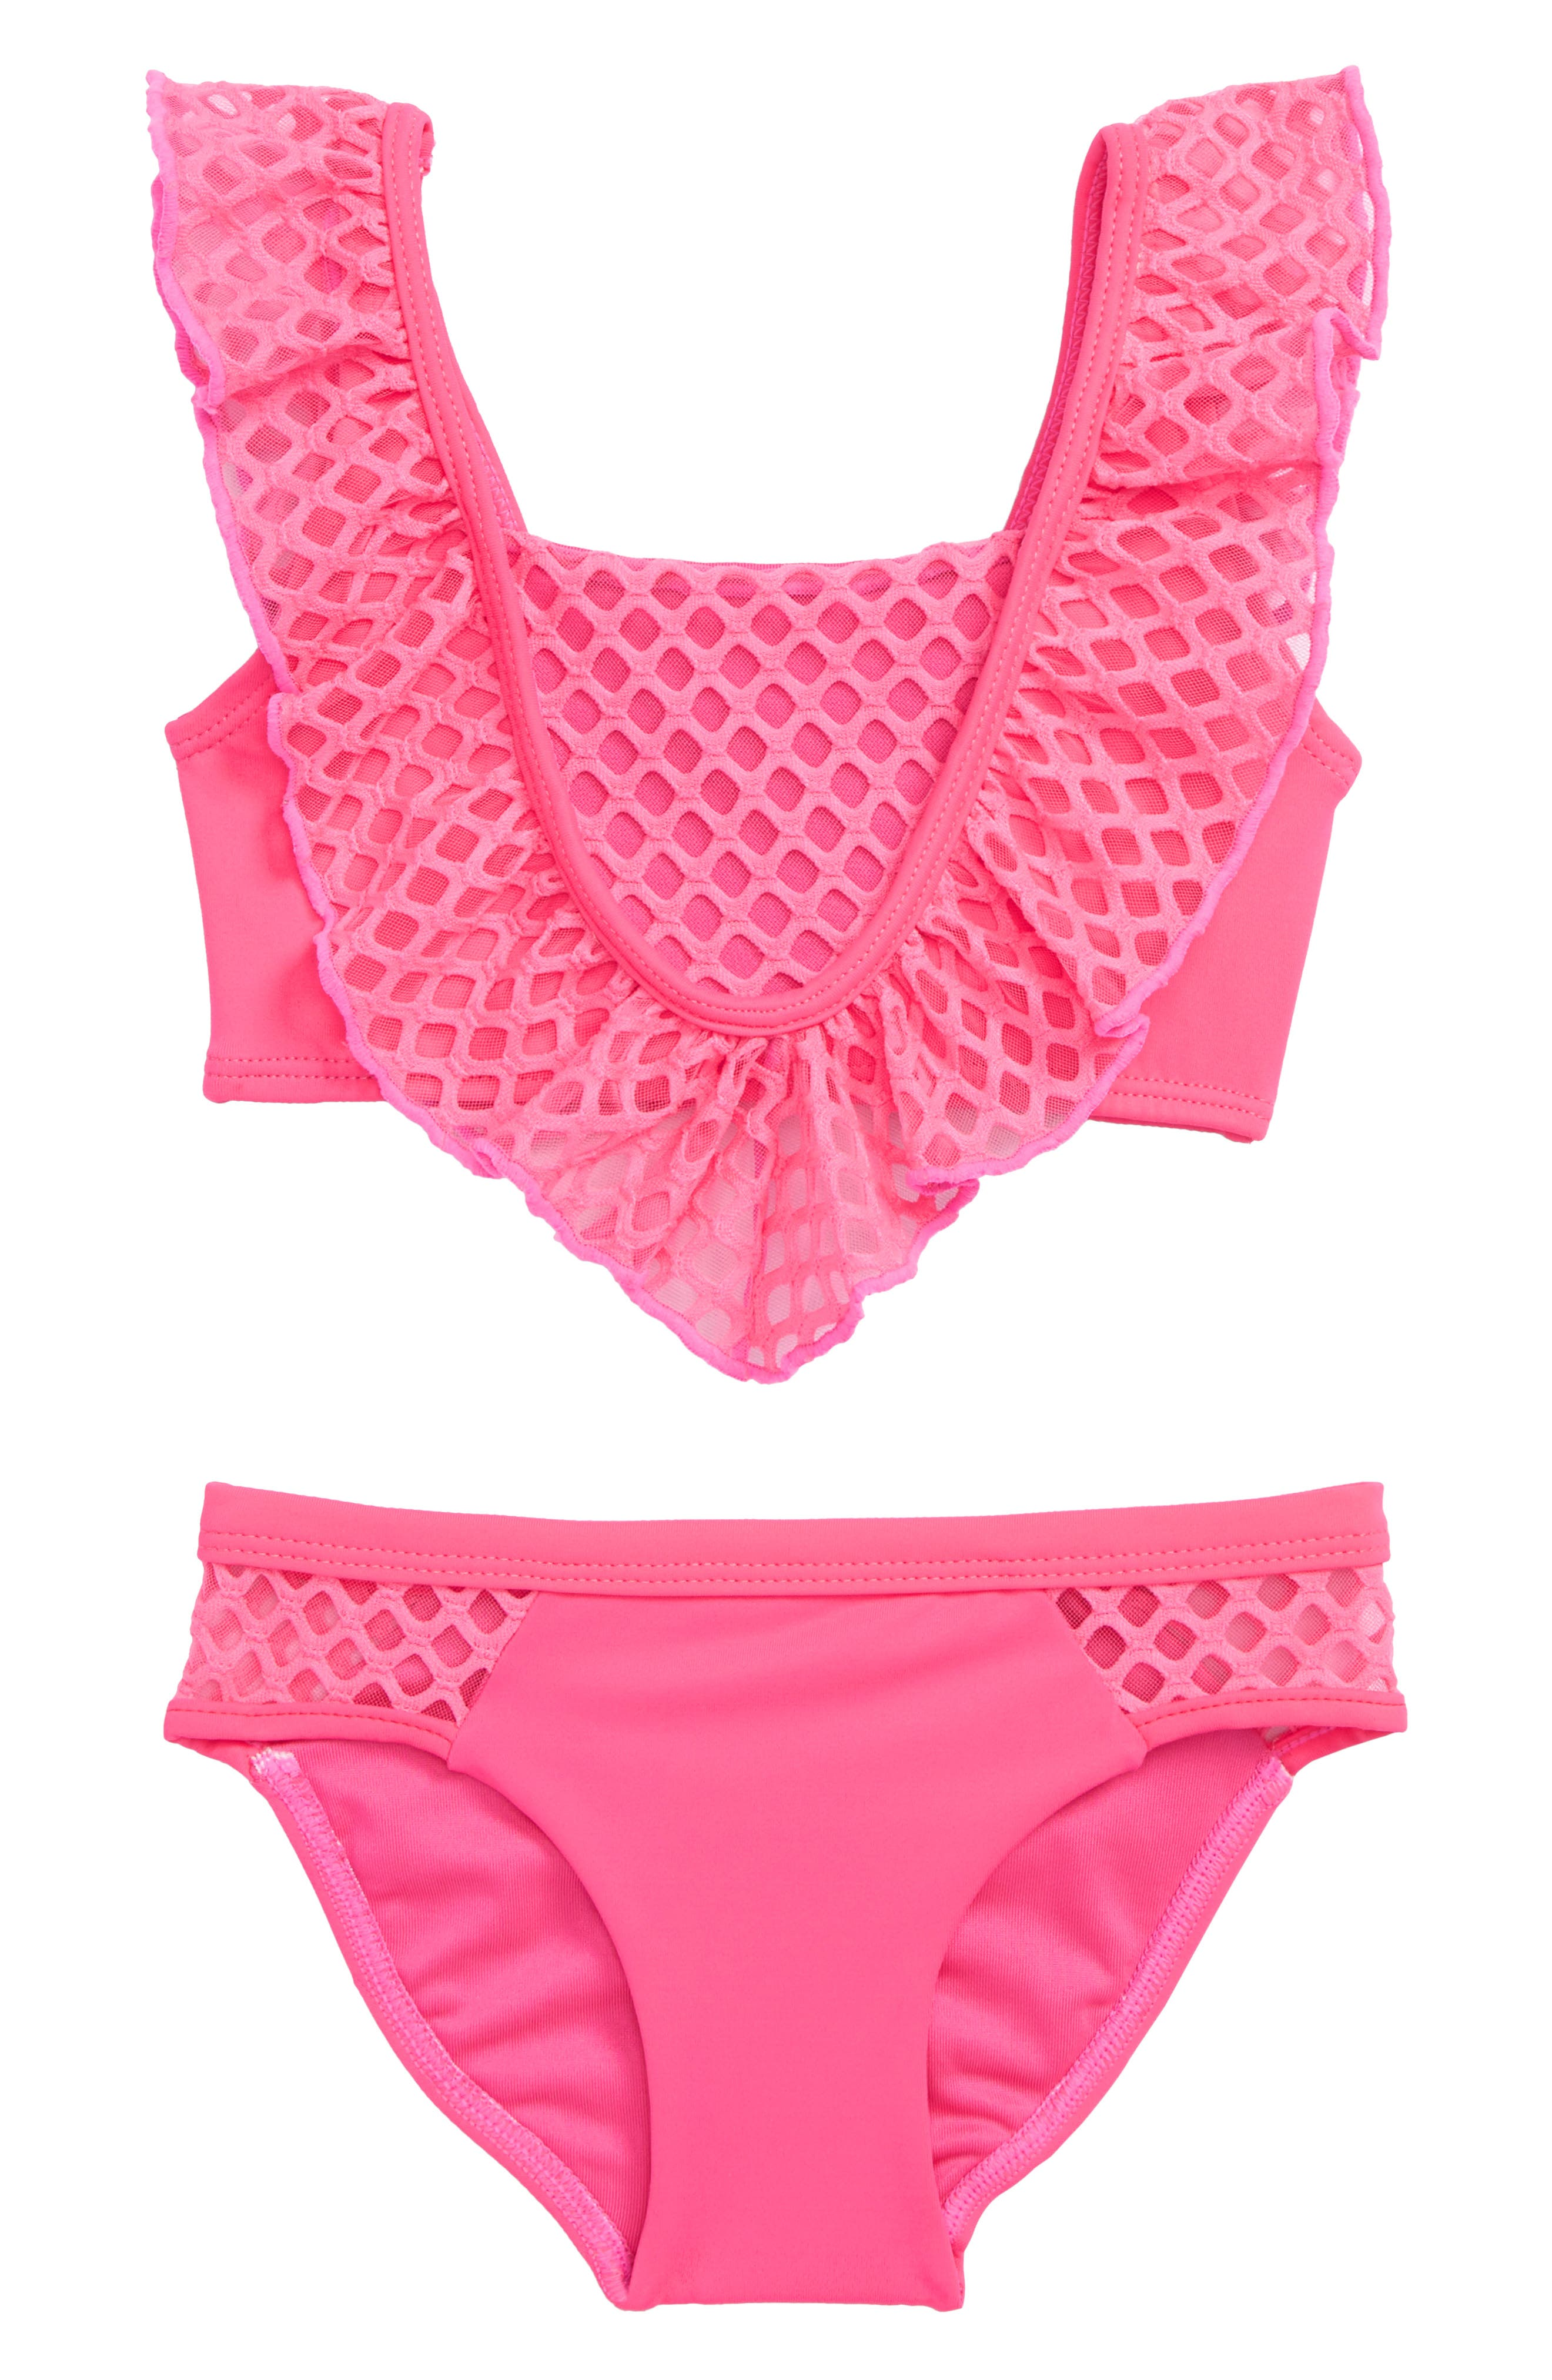 Blake Ruffle Two-Piece Swimsuit,                             Main thumbnail 1, color,                             Neon Pink